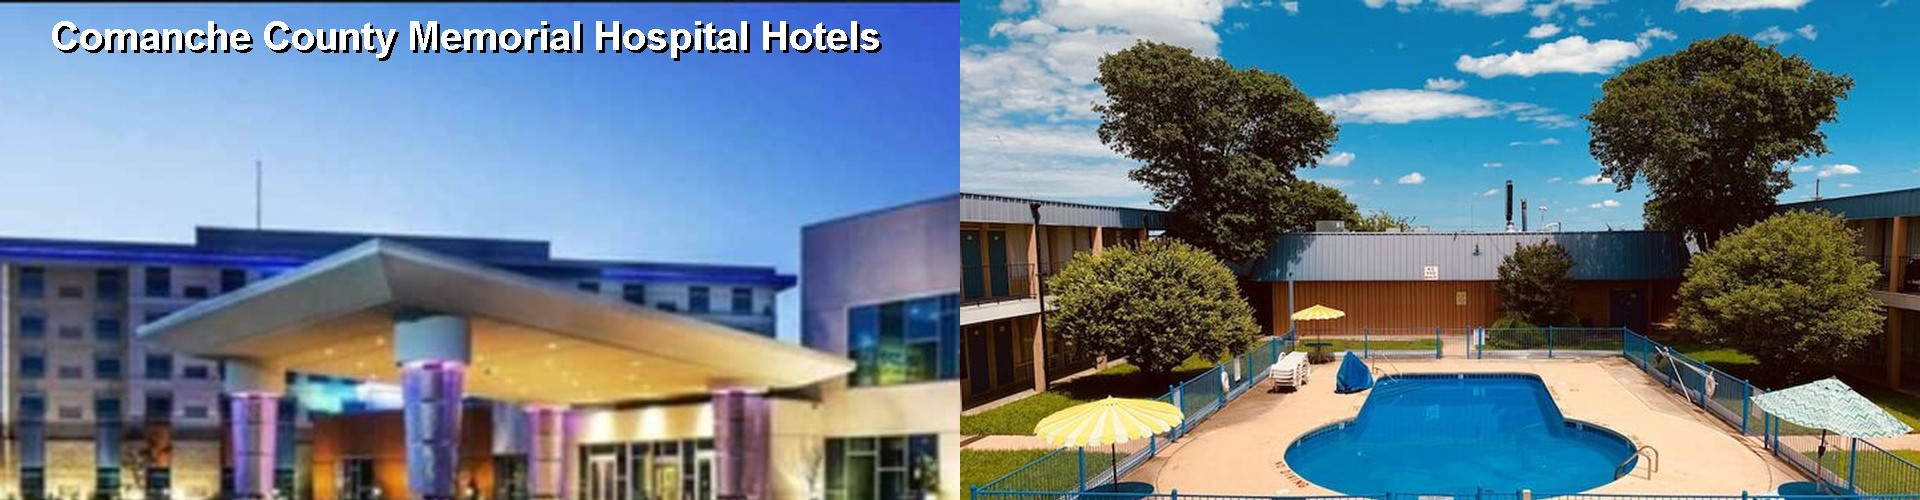 37 Top Hotels Near Comanche County Memorial Hospital In